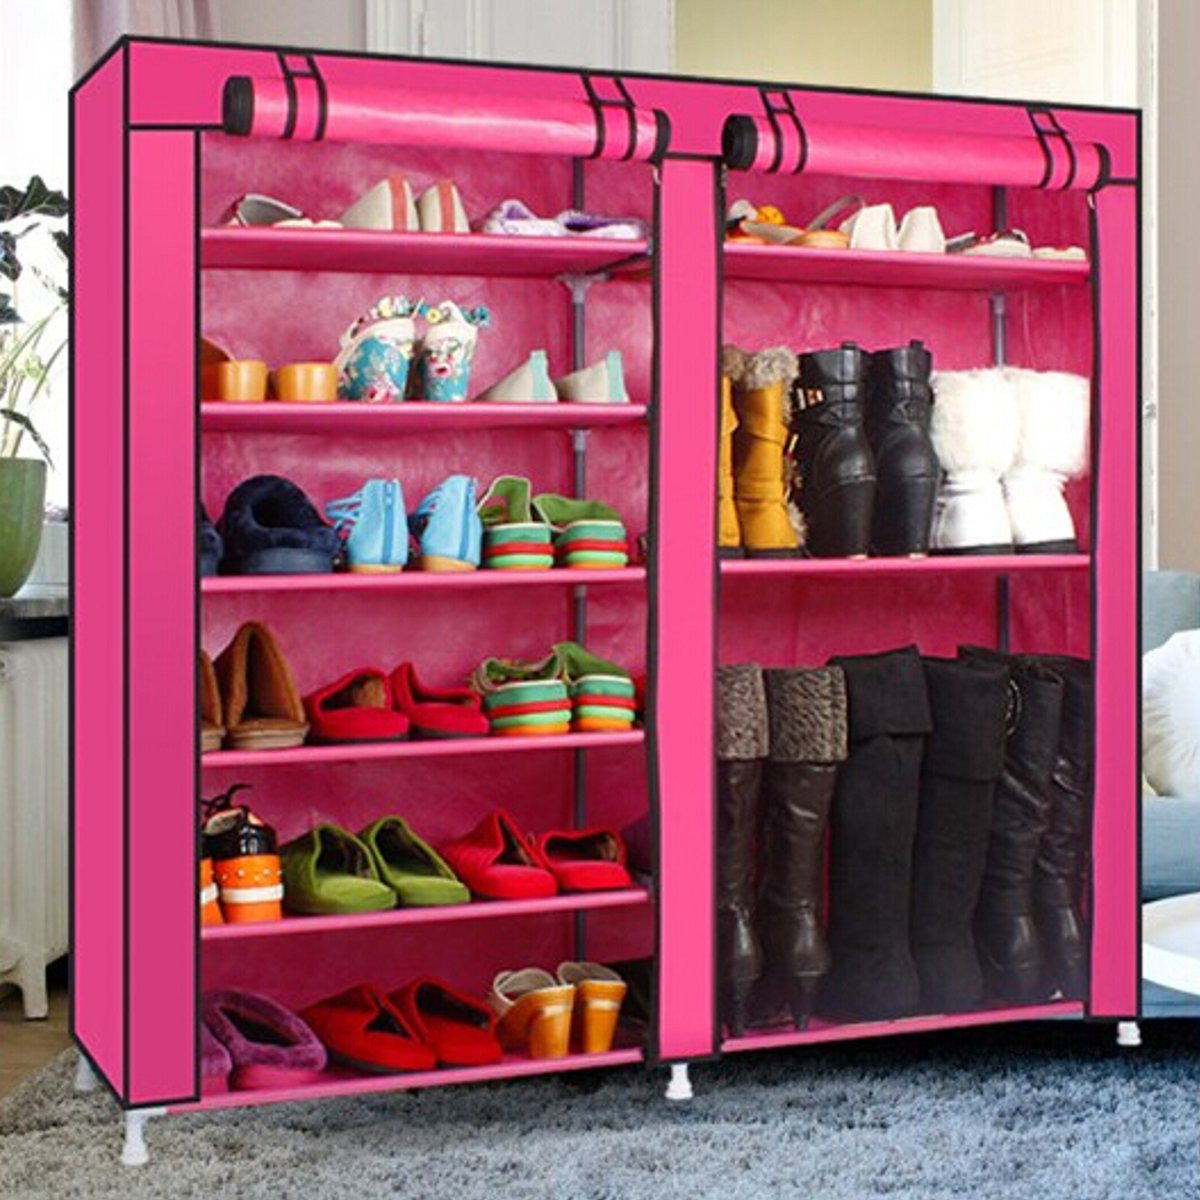 Covered Shoes Rack Home Shoe Storage Fabric Shelf DIY Sundries Organizer  Cabinet Closet Multifunction 6 Tier In Shoe Cabinets From Furniture On ...